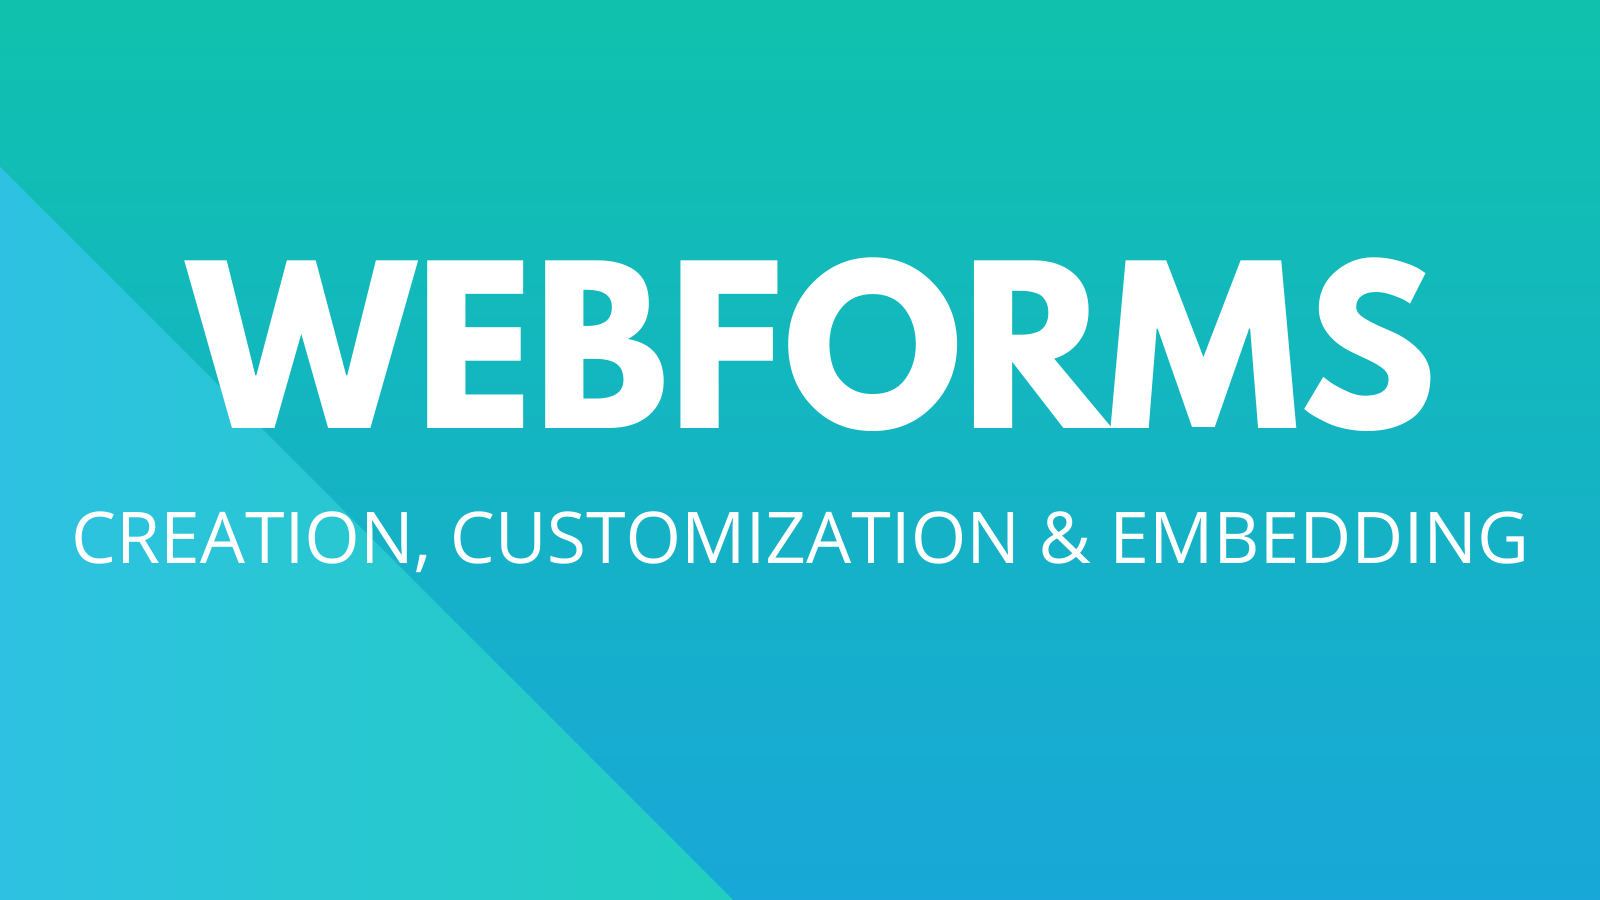 Webforms: Creation, Customization & Embedding